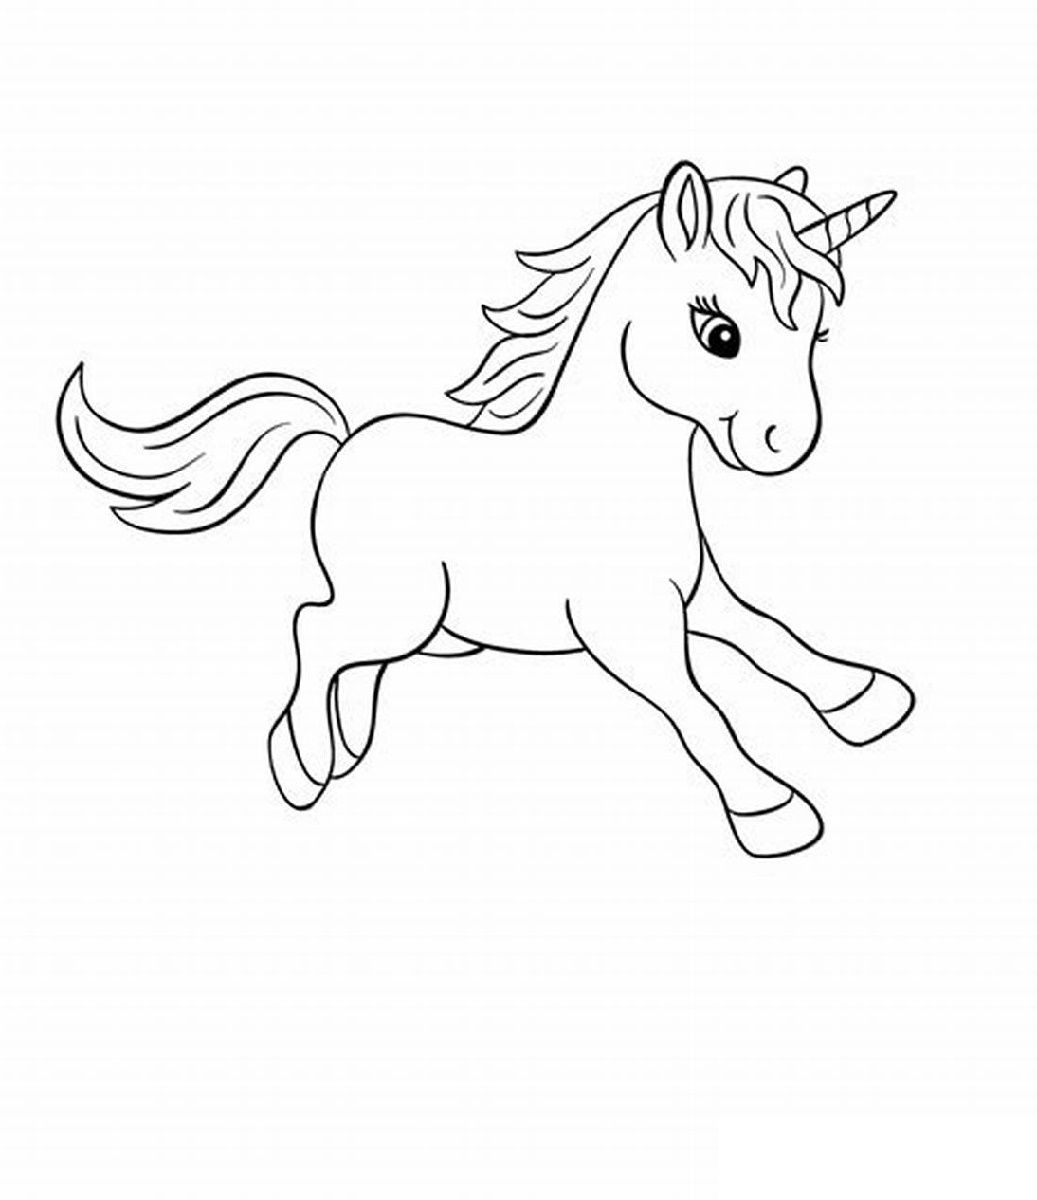 Printable Baby Unicorn Coloring Pages K5 Worksheets Unicorn Coloring Pages Coloring Pages Baby Unicorn